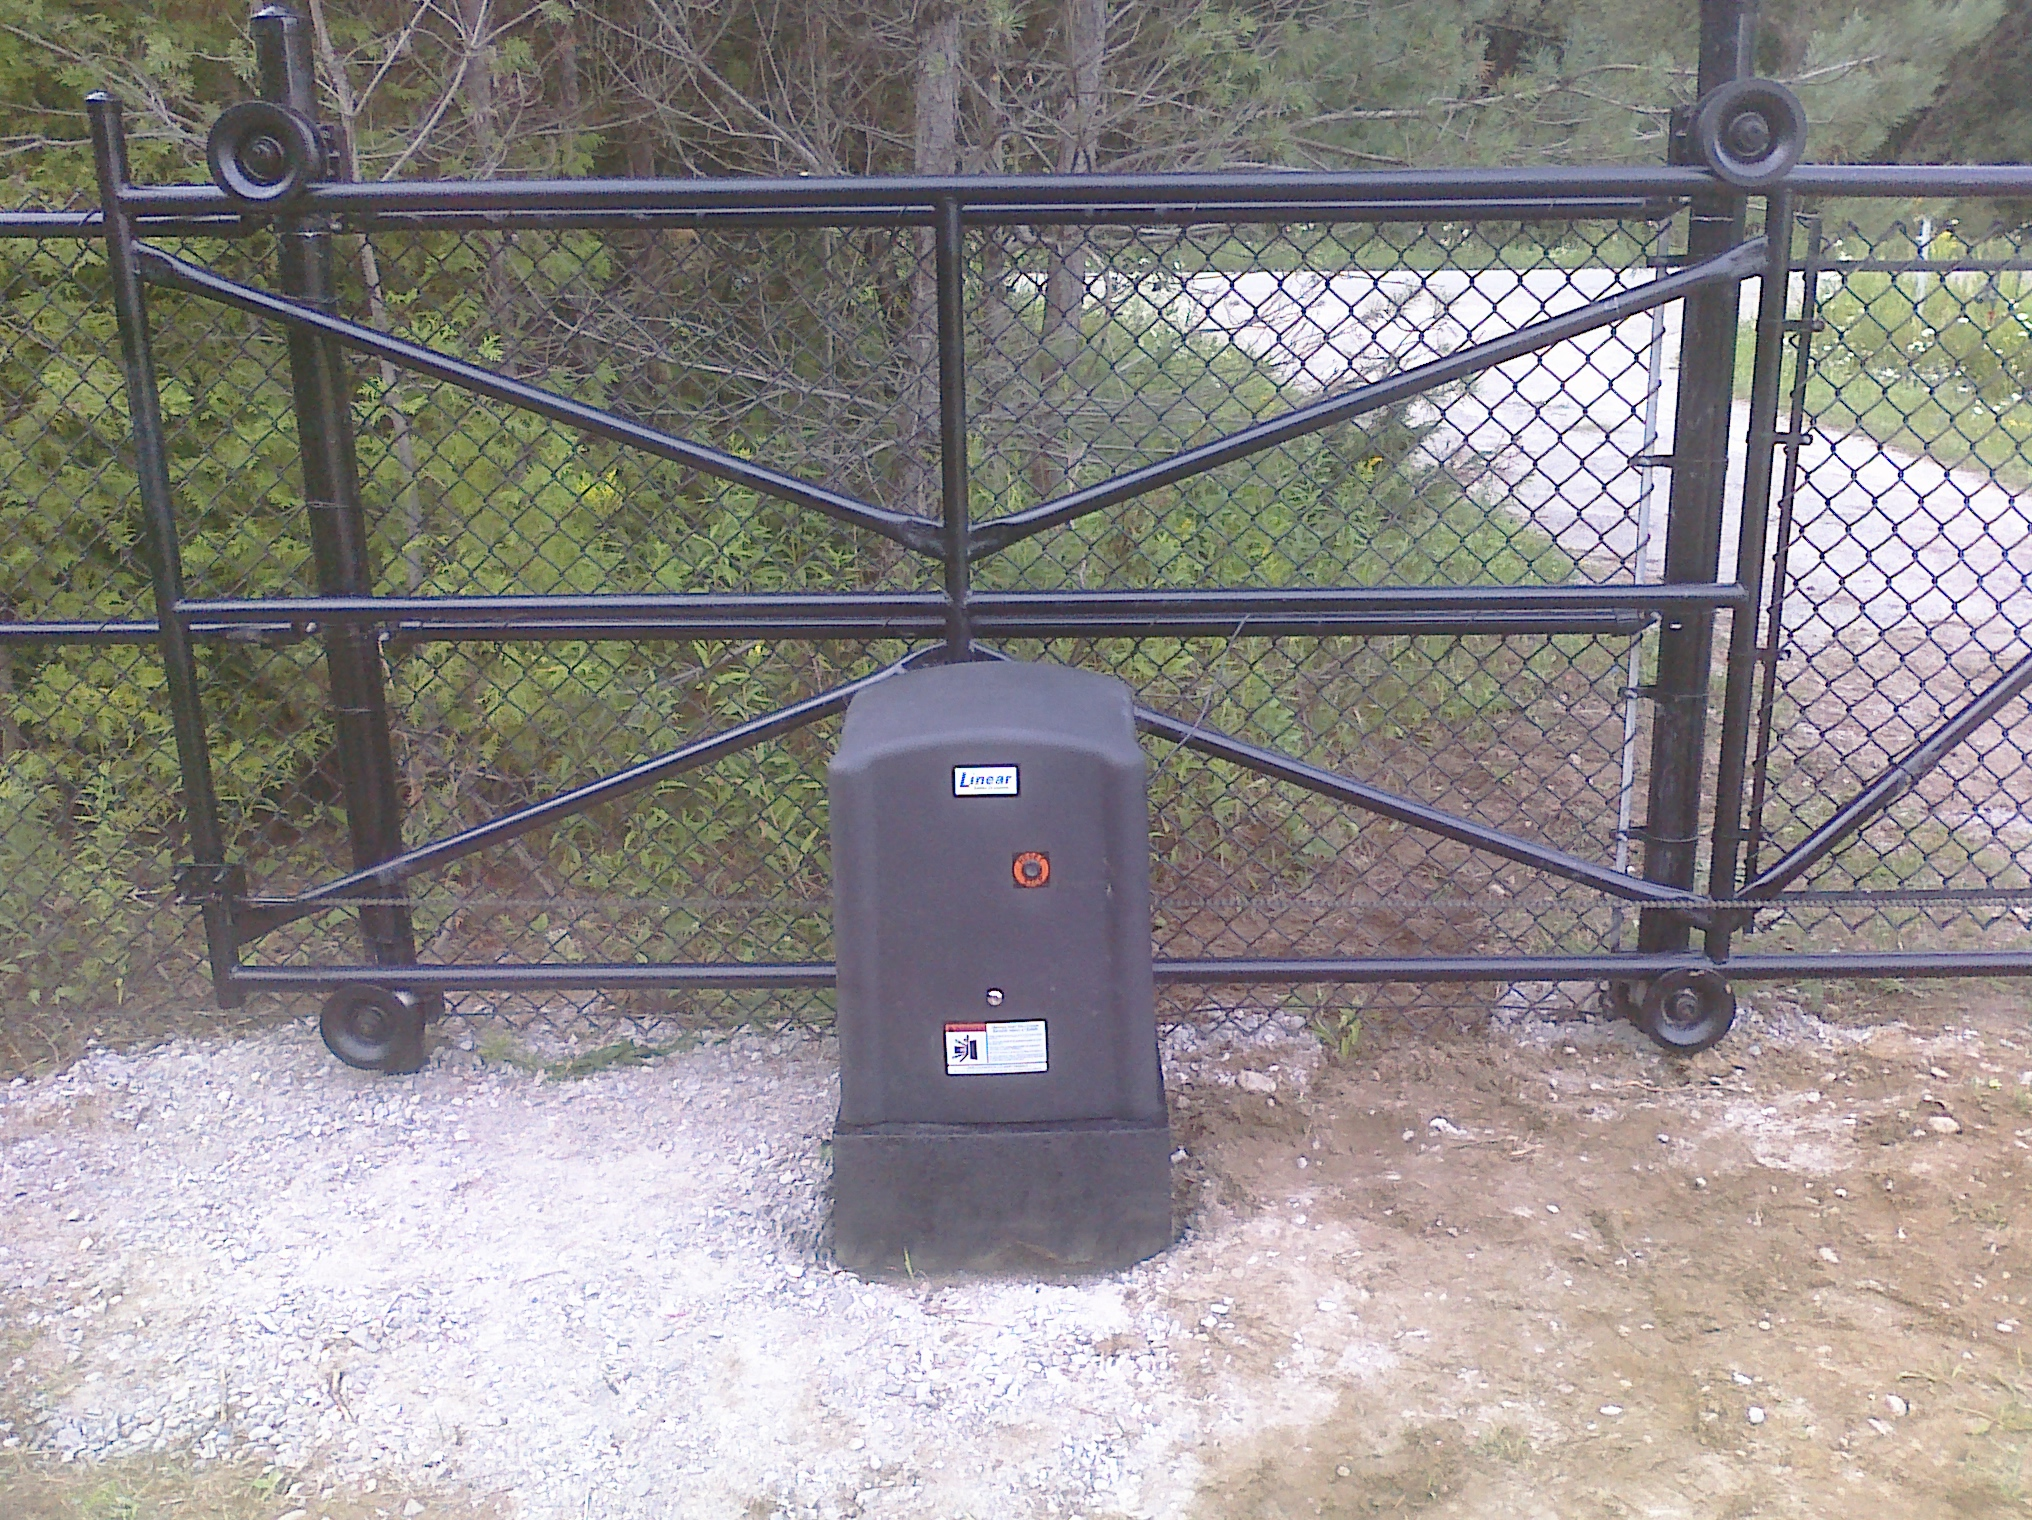 Sliding Gate & Operator, driveway security gates do it yourself